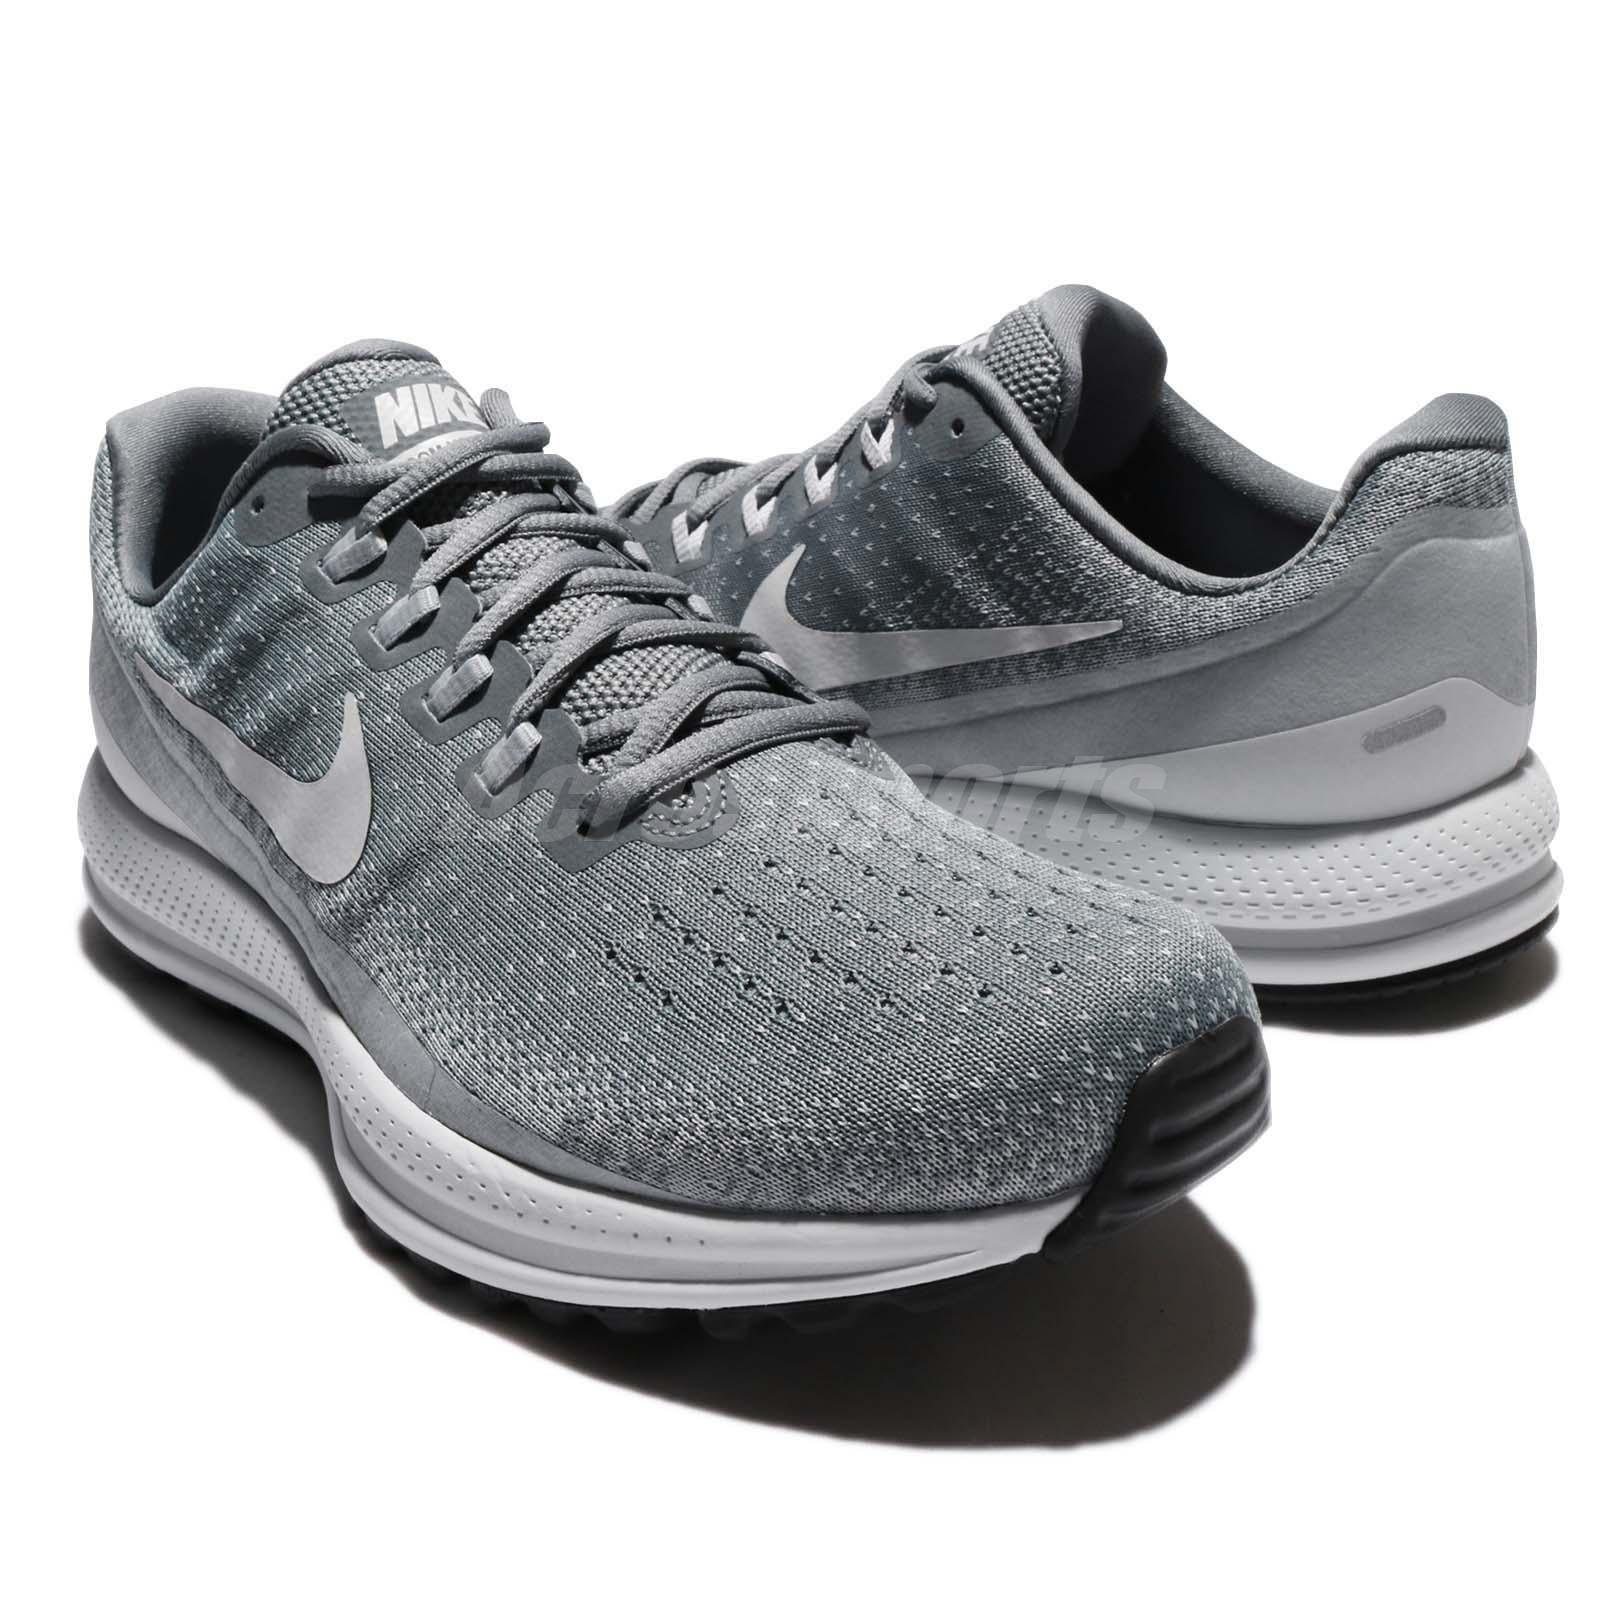 Nike Nike Nike Air Zoom Vomero 13 XIII Cool Grey Hommes Running Chaussures Baskets 00cef4